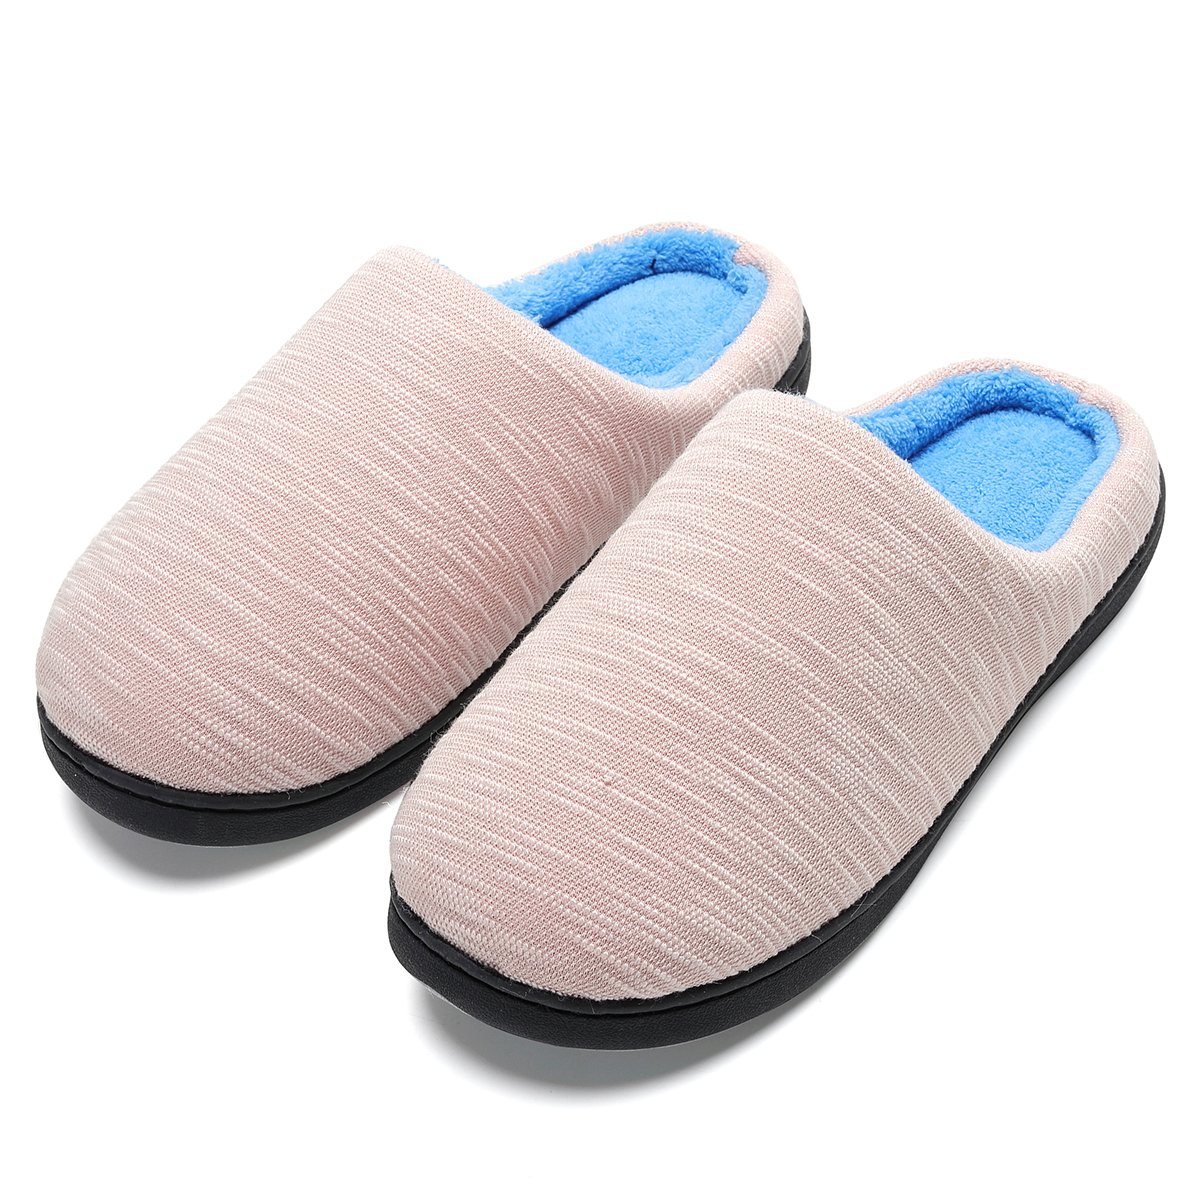 INFLATION Women's Comfort House Slippers Two-Tone Memory Foam Indoor & Outdoor Anti-Skid